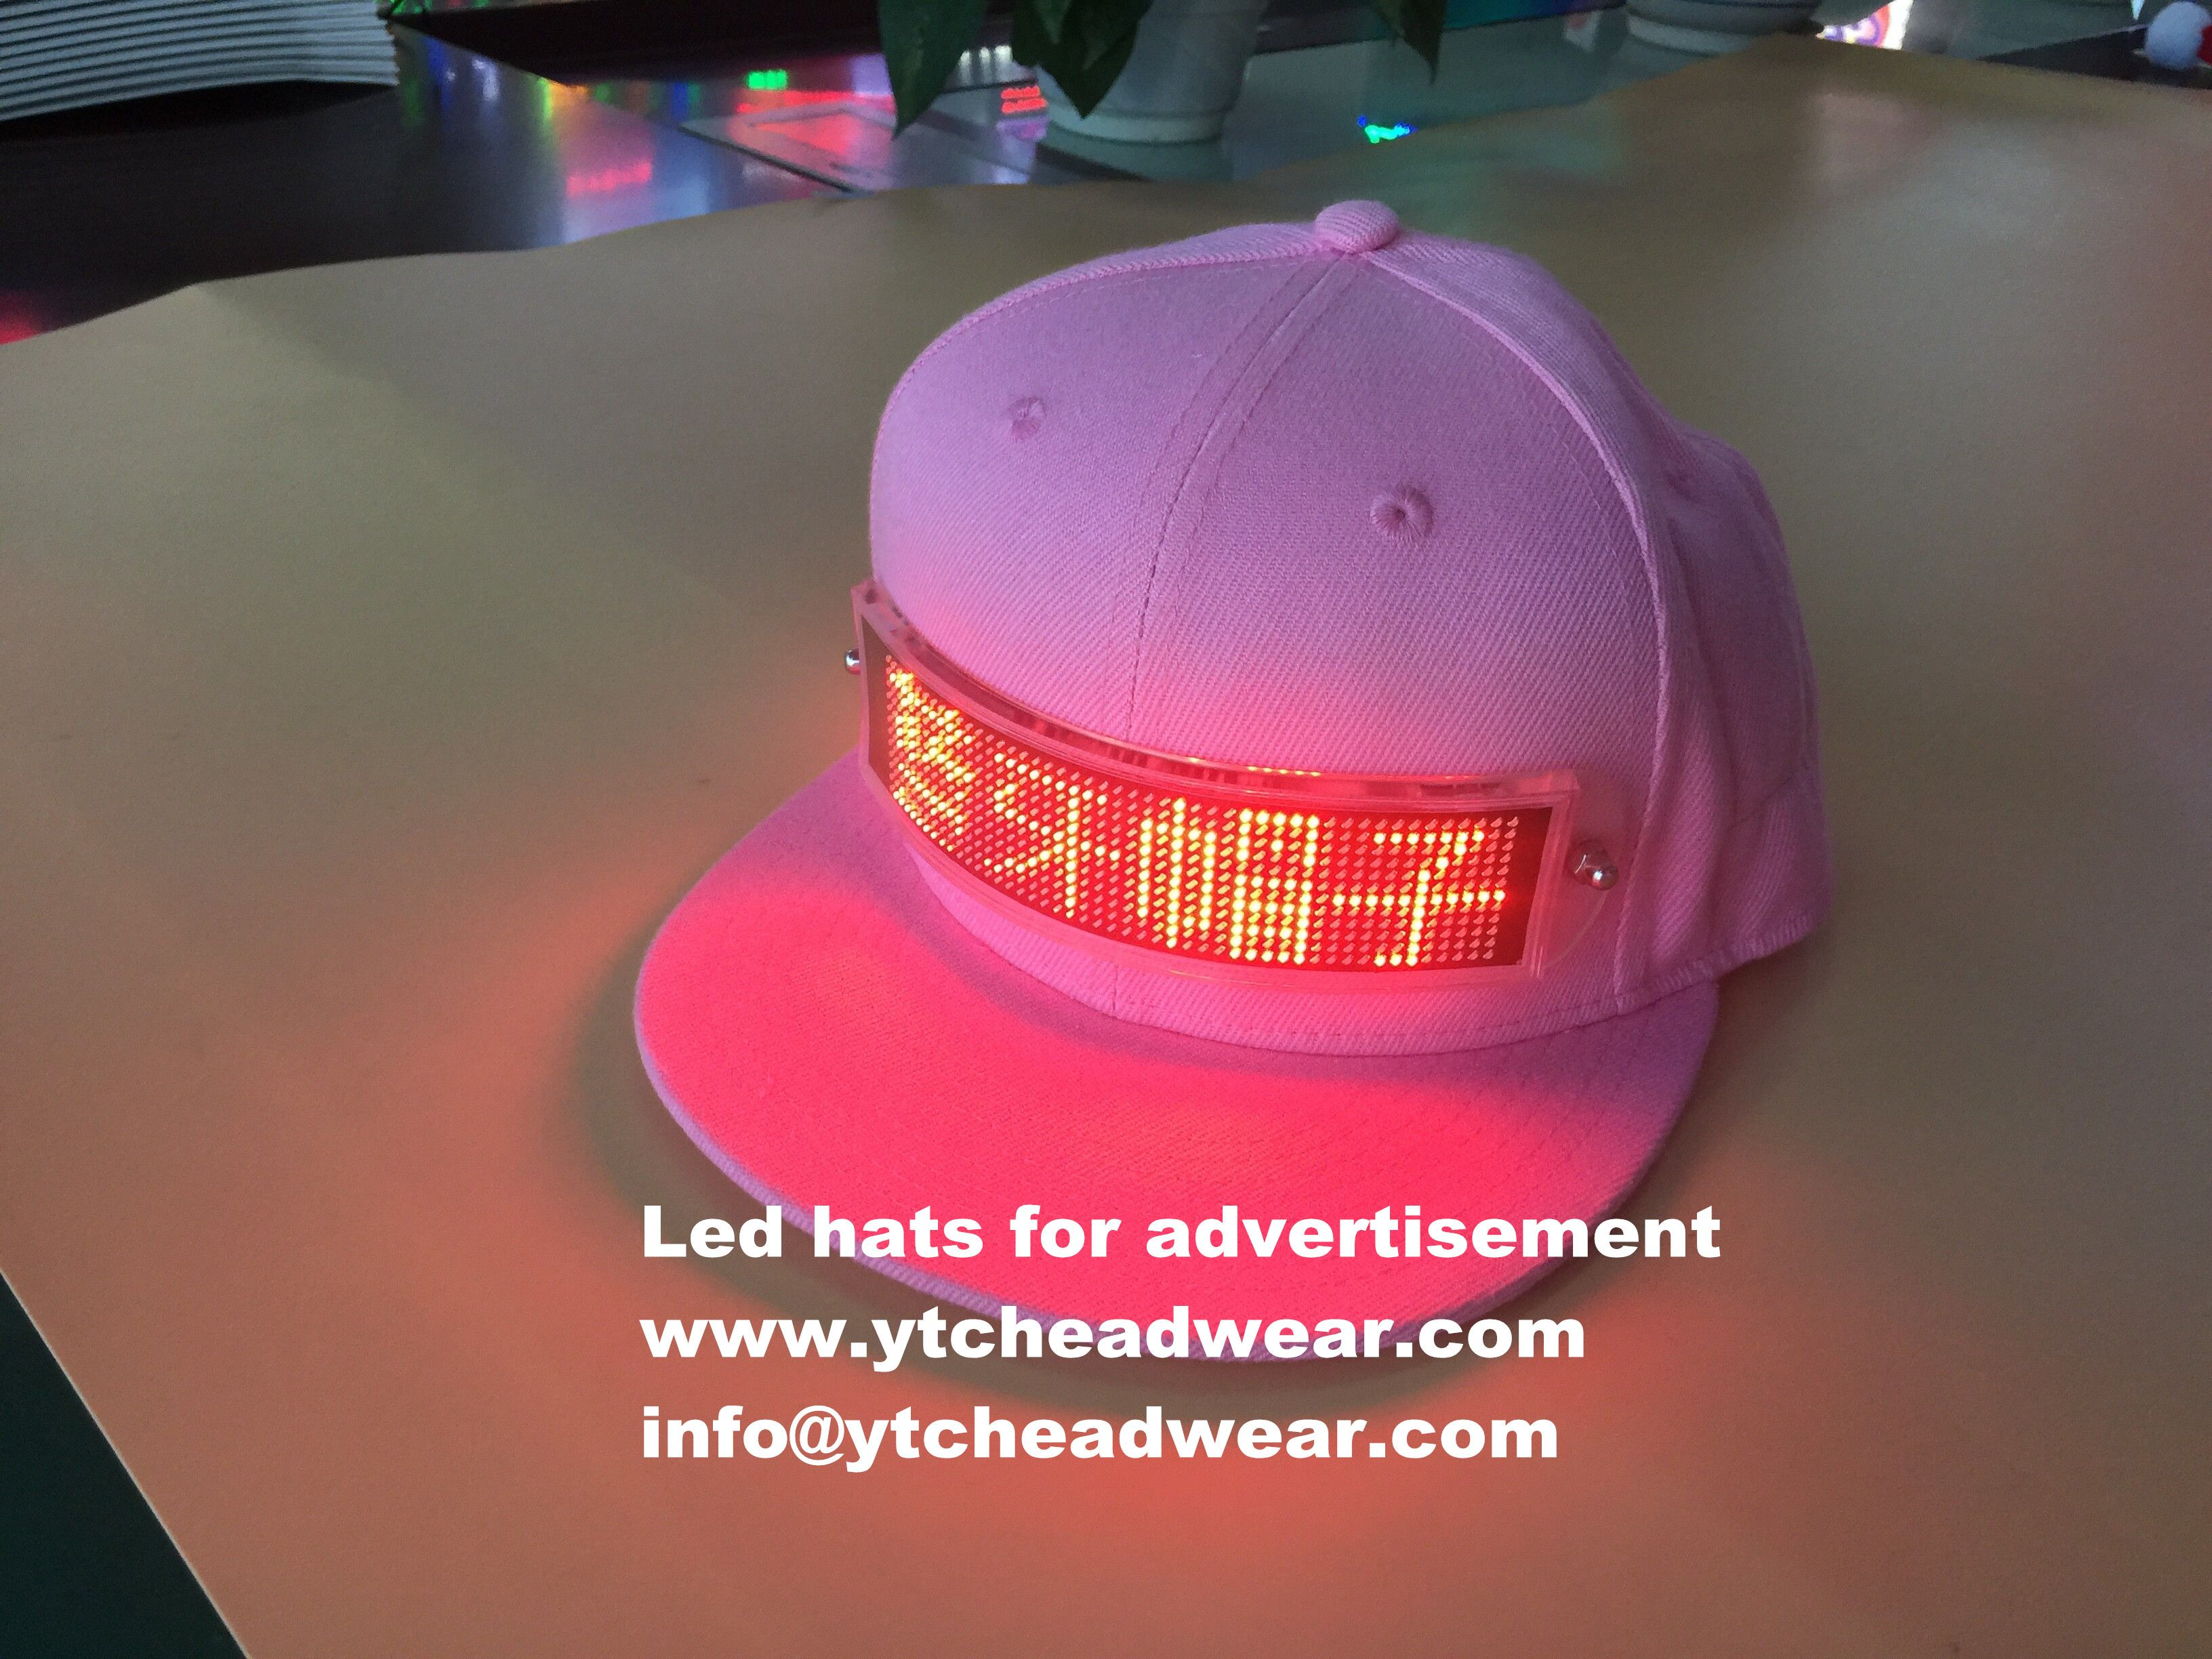 This Is A New Style In 2018 And Special Advertisement Led Hats You Can Display Your Advertisement Directly Yo Advertising And Promotion Led Hat Tee Shirts